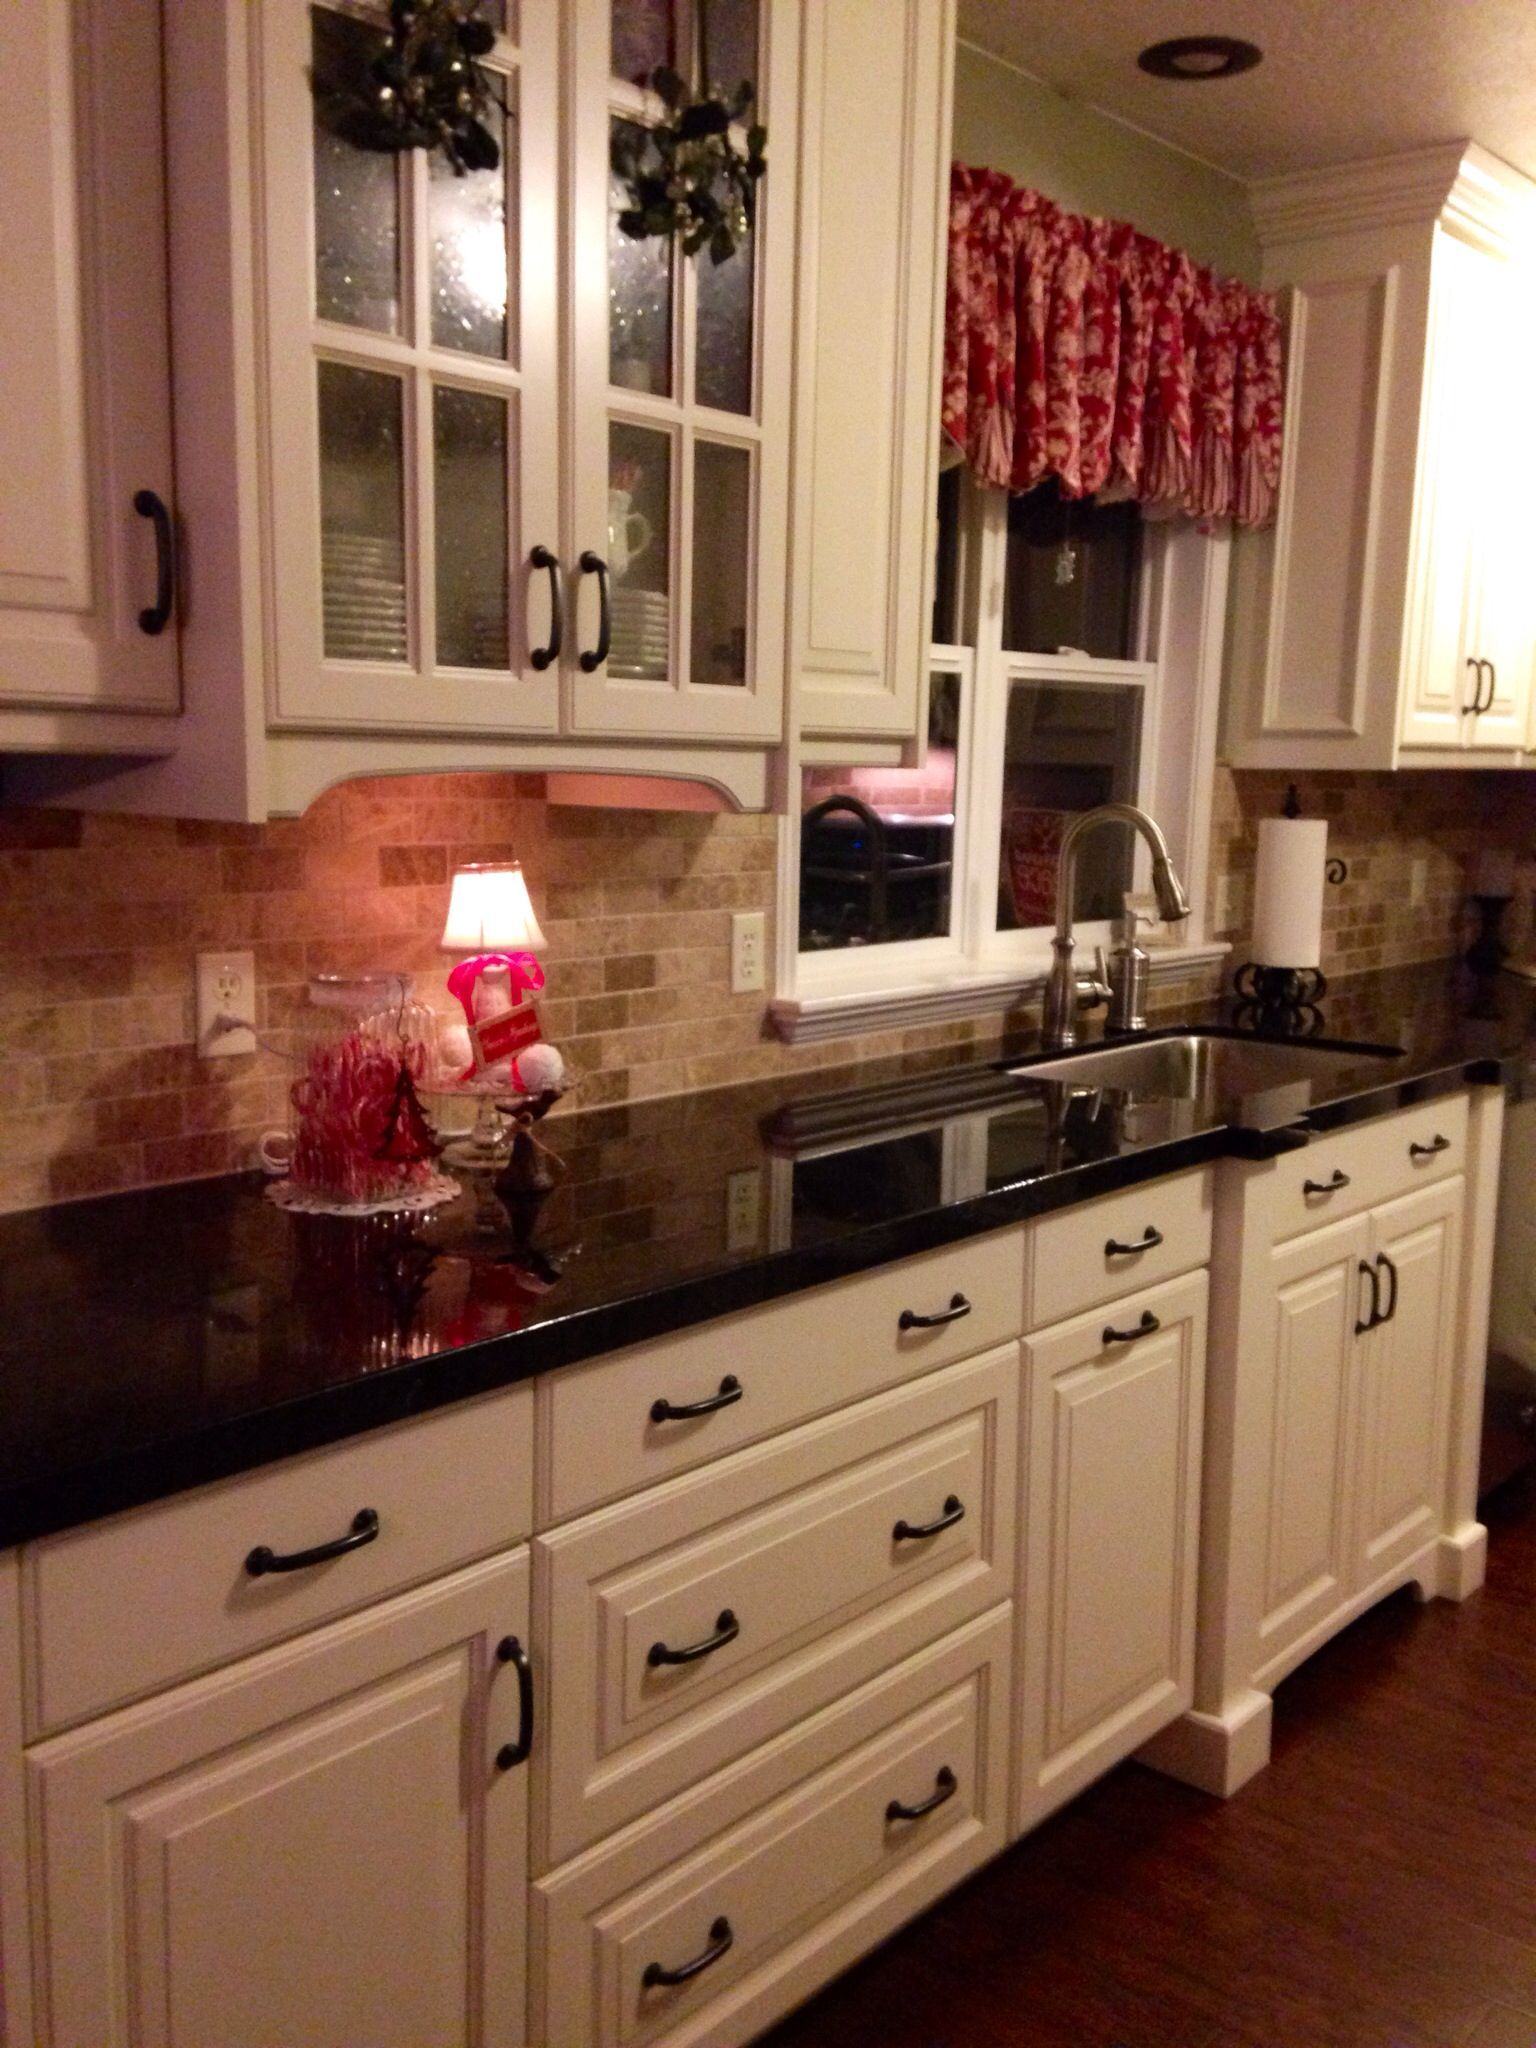 A Backsplash Is Used In Order To Protect The Wall From Splashes It Is Usually Instal Antique White Kitchen Cabinets Antique White Kitchen New Kitchen Cabinets